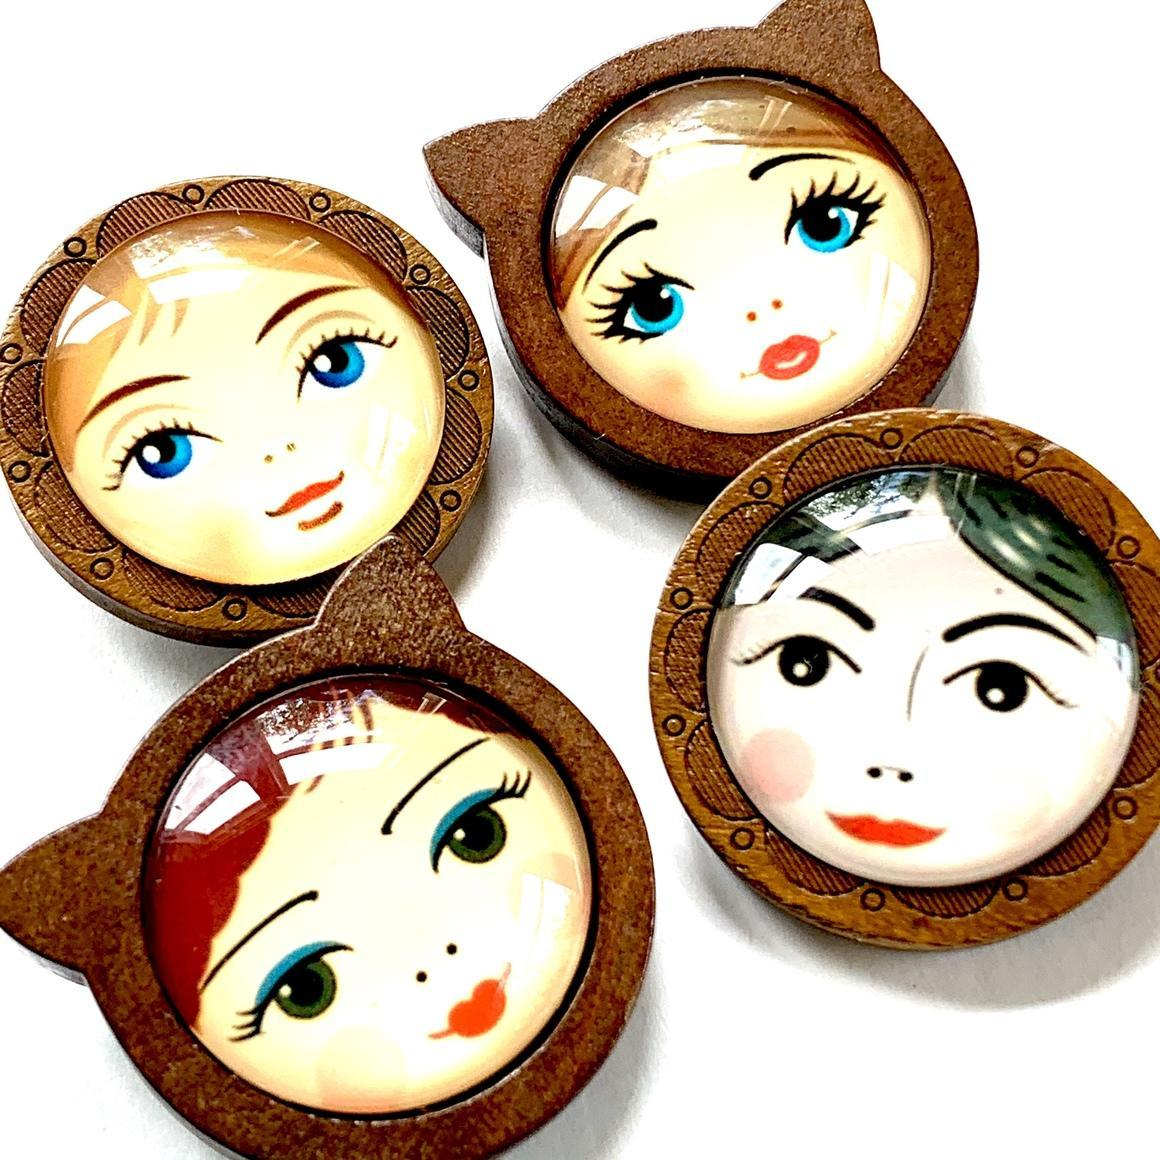 Cat Face and Doll Face brooch | Trada Marketplace